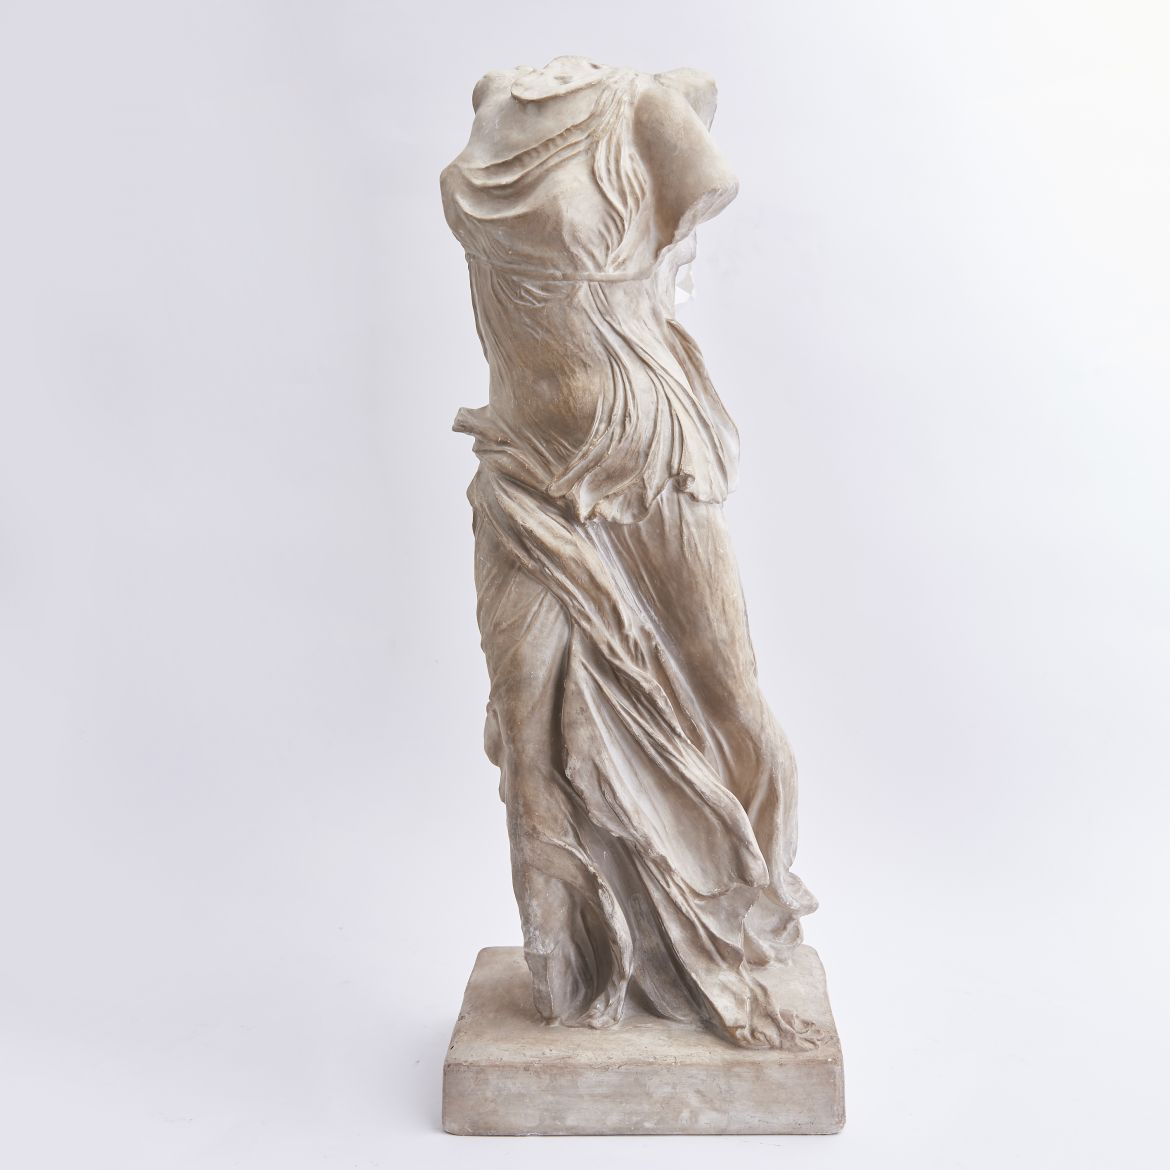 Plaster Of Nike Of Samothrace